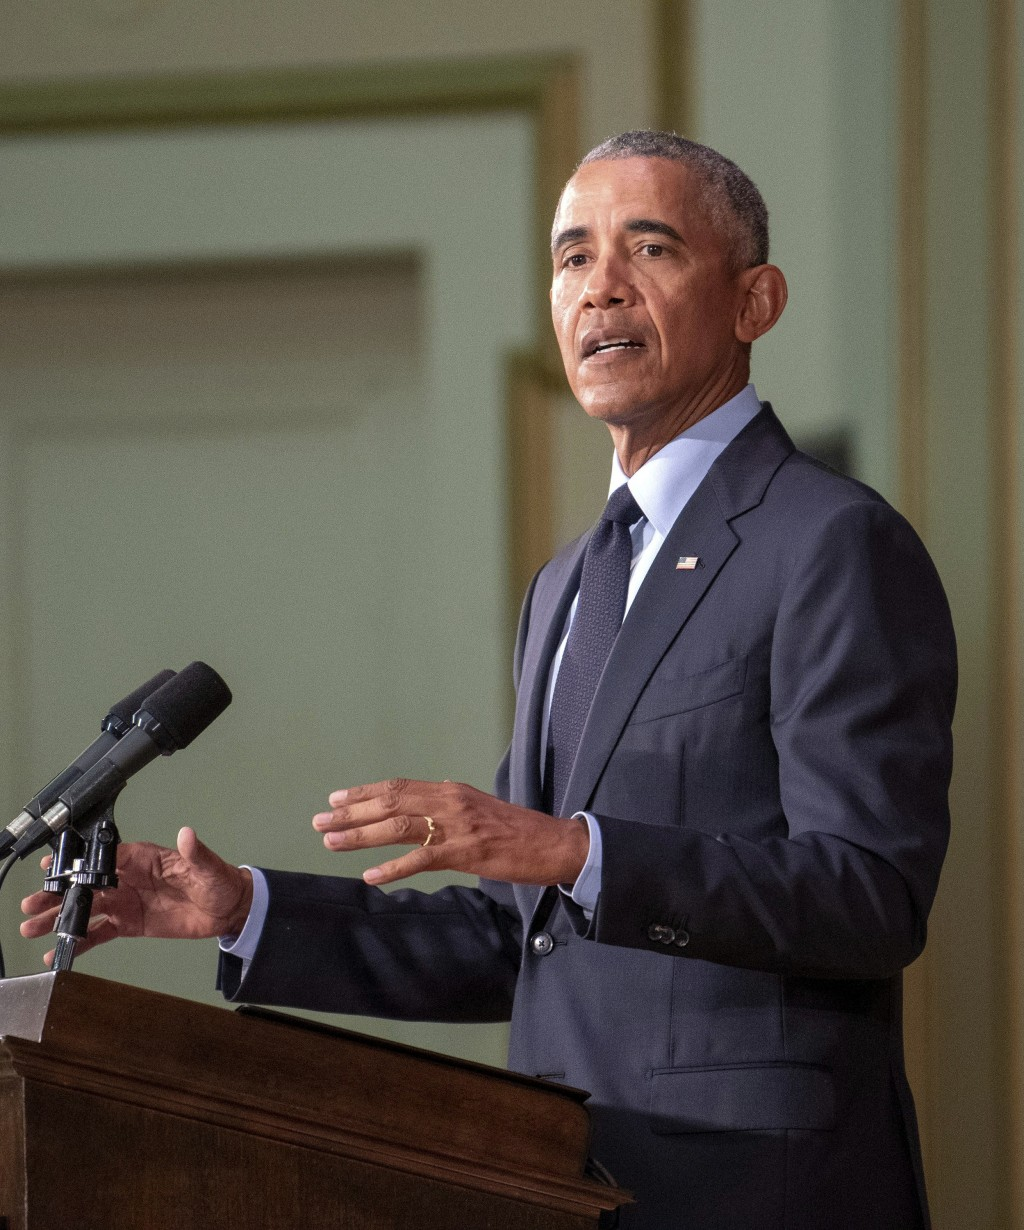 Former President Barack Obama speaks to a full crowd in Foellinger Auditorium Friday, Sept. 7, 2018, on the University of Illinois campus in Urbana. O